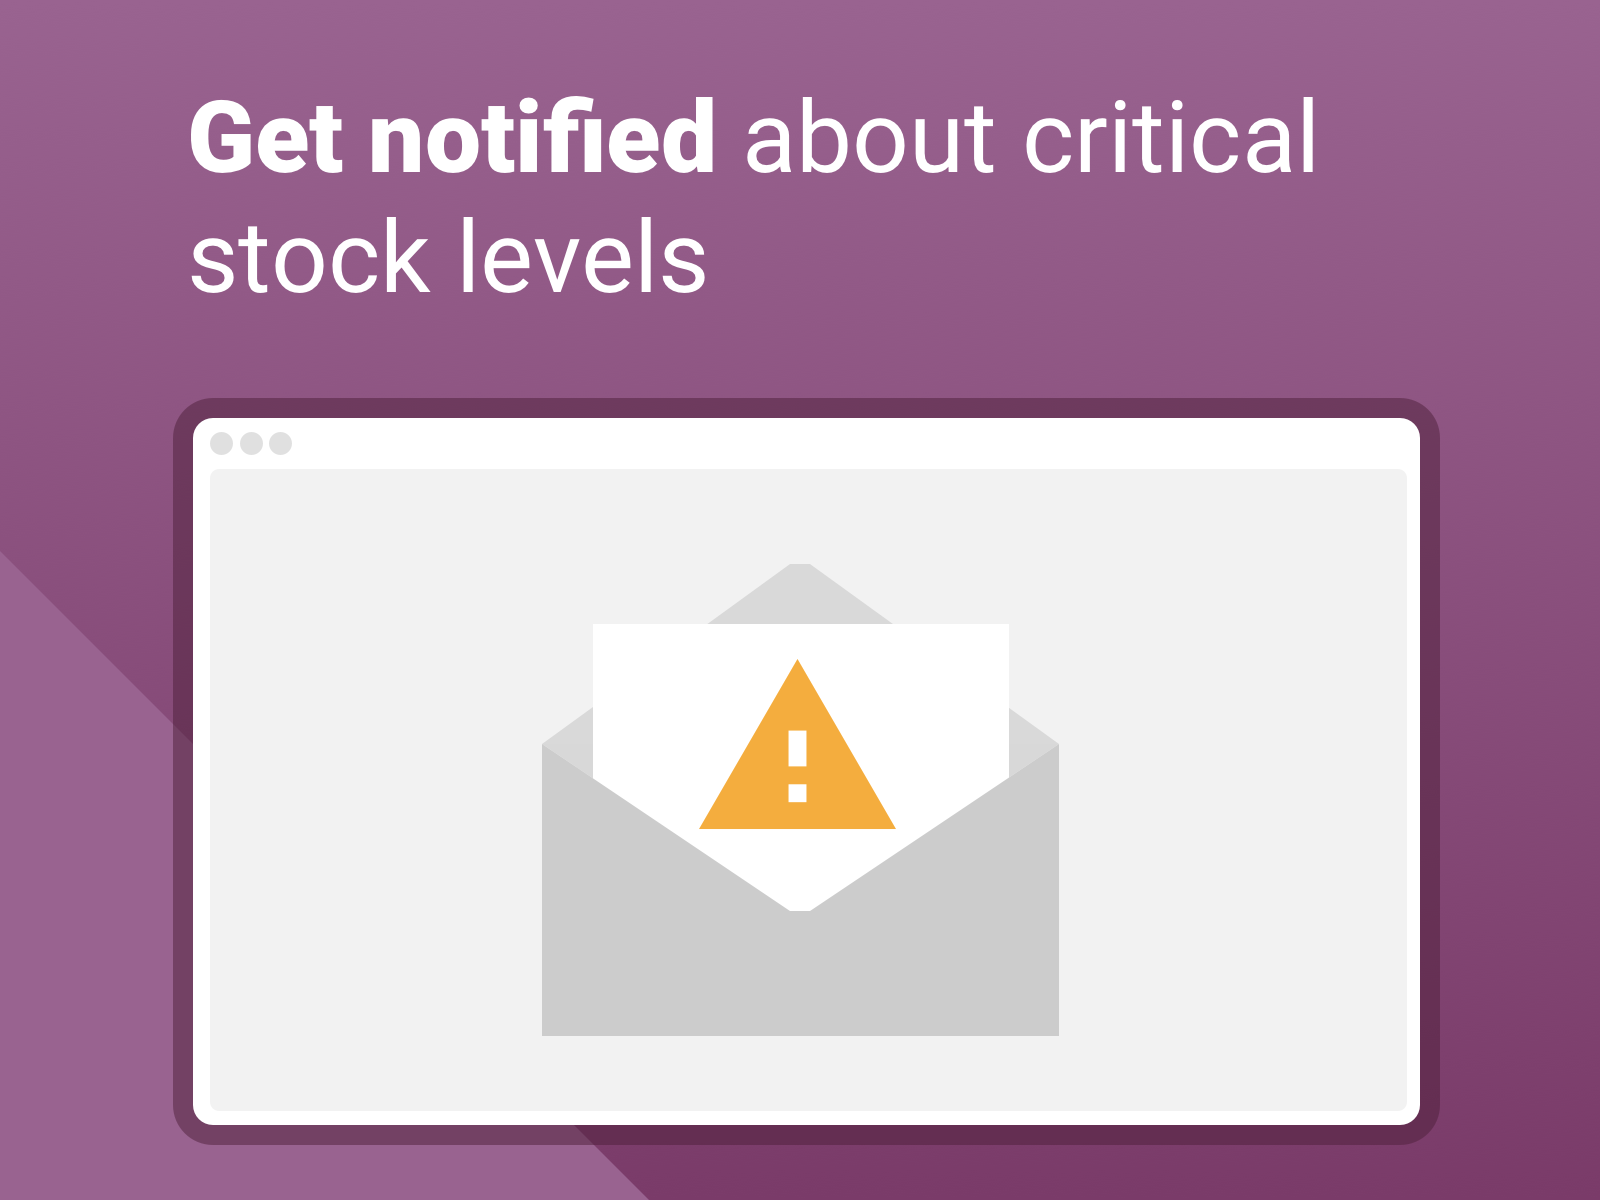 Get notified automatically - Our safety stock app notifies you automatically - and smart. No spamming your inbox, but meaningful overview of where your stock gets low.